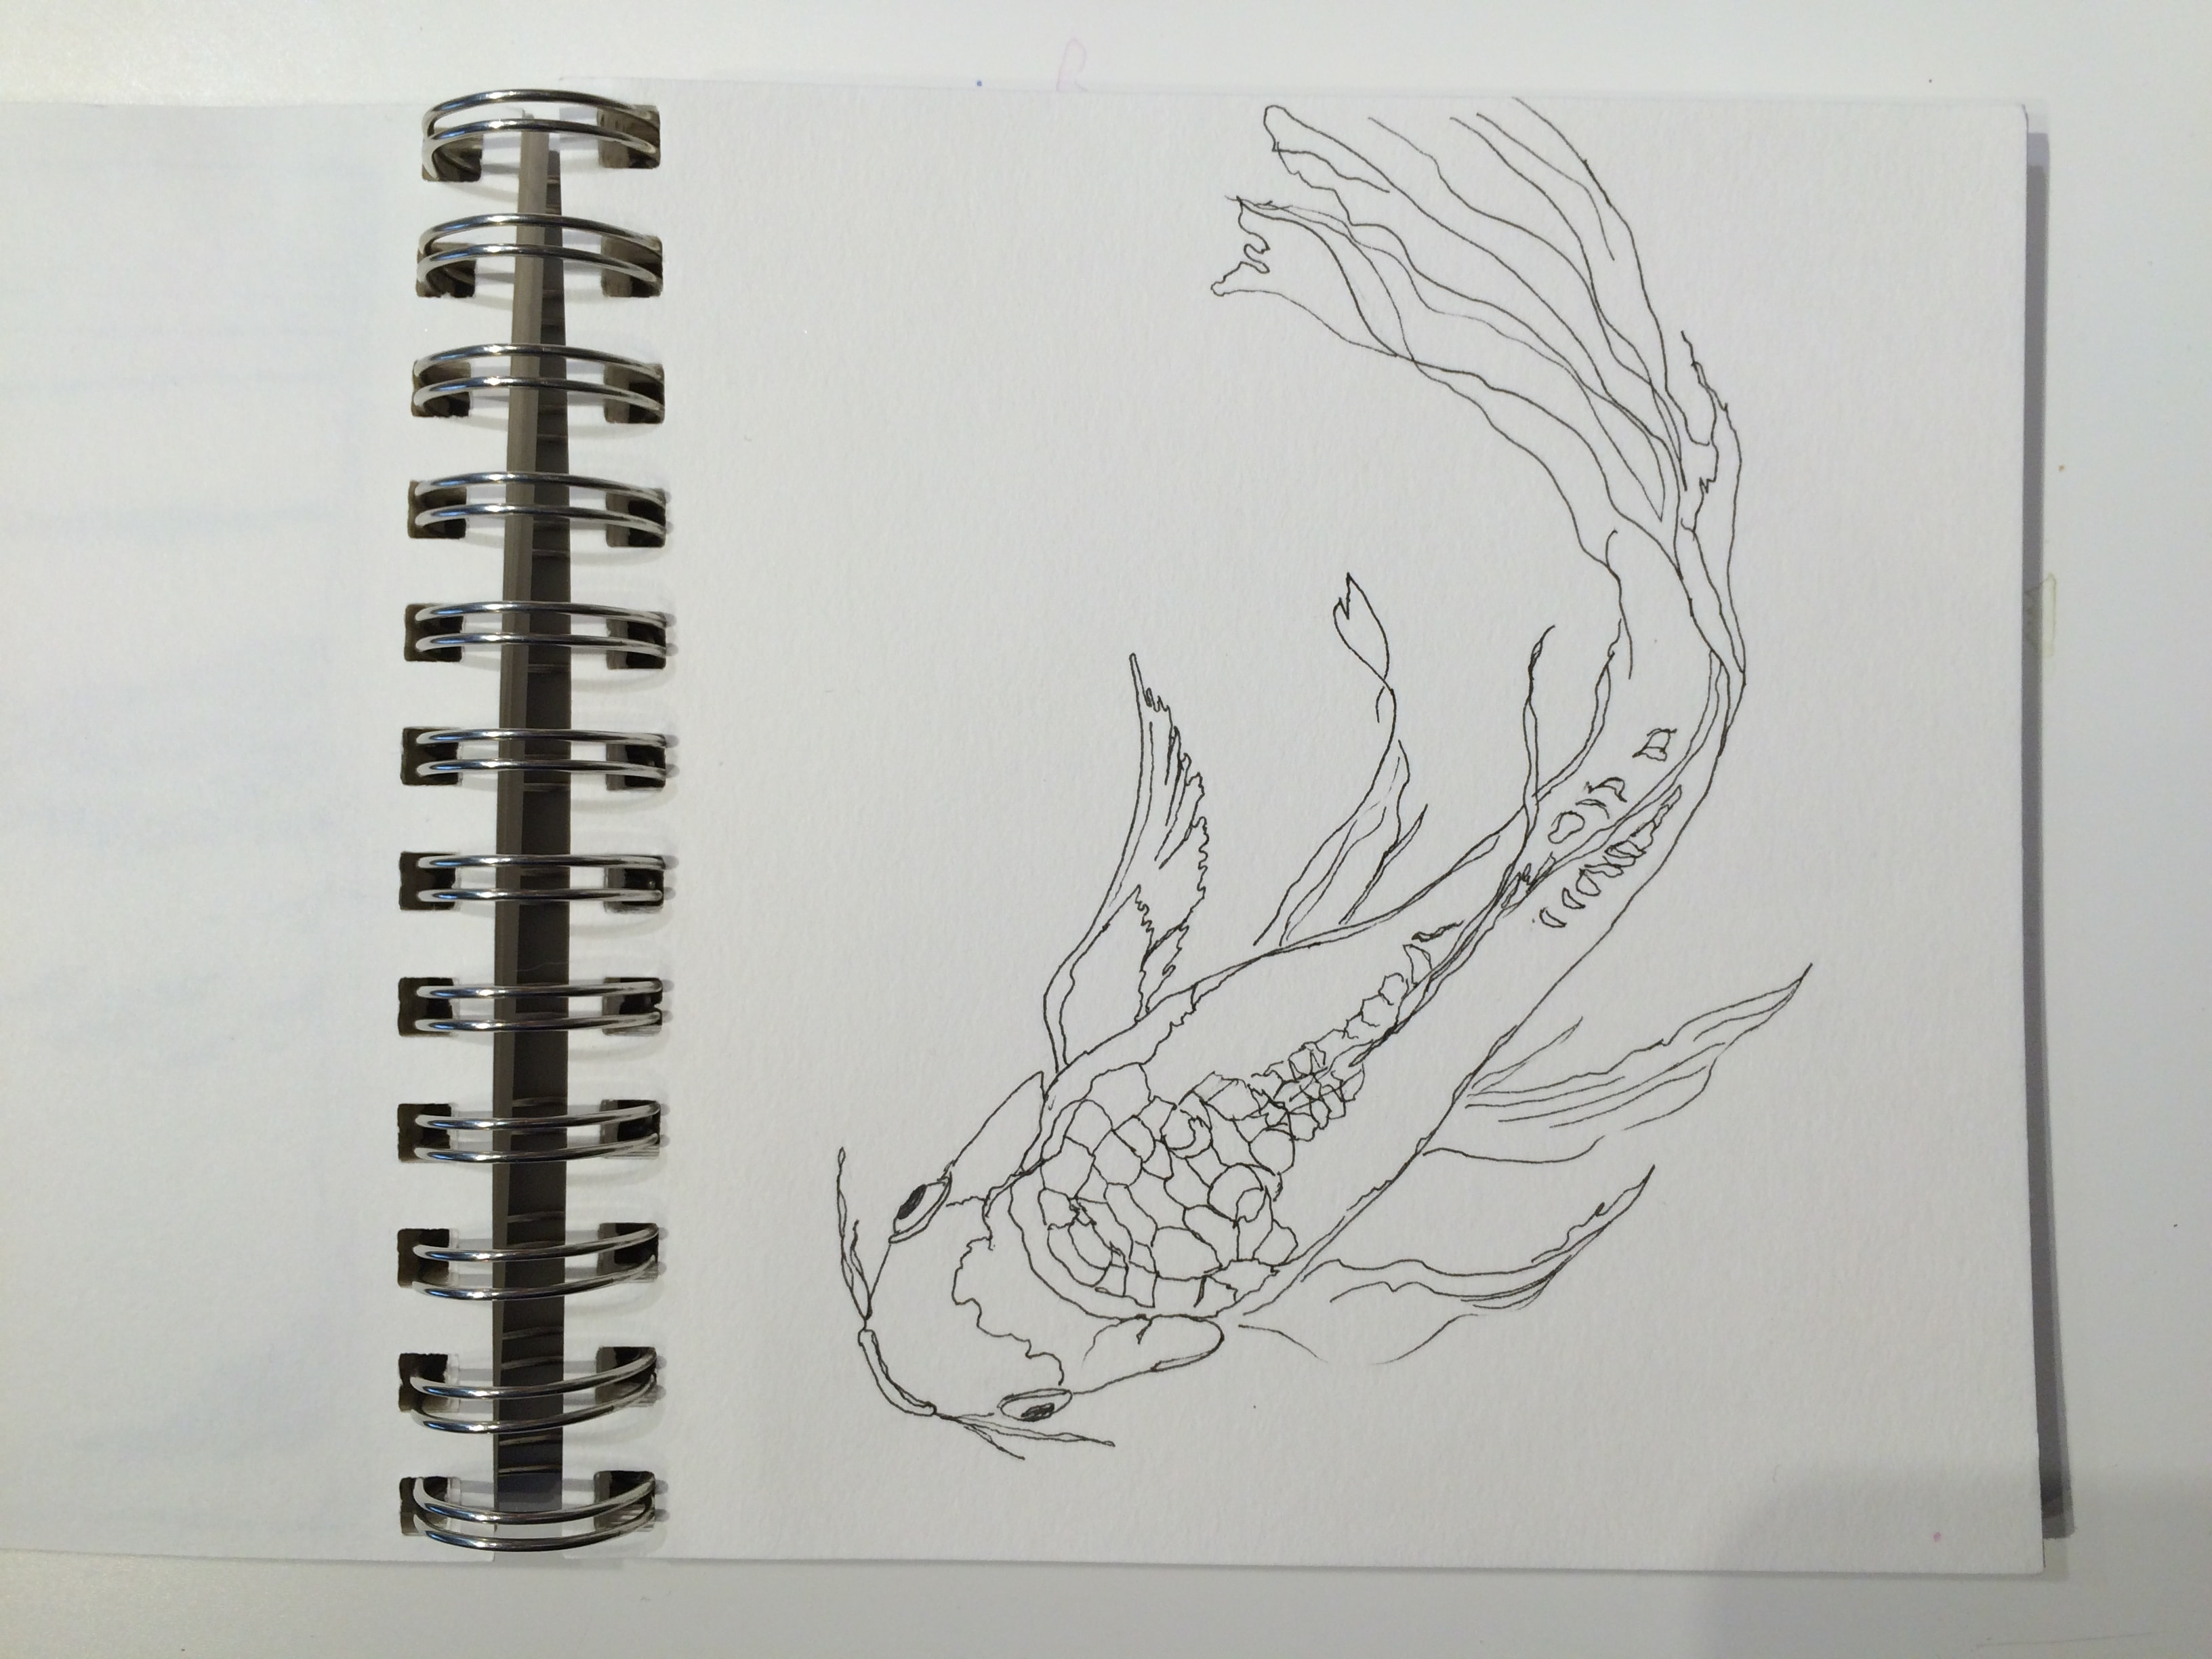 Butterfly koi sketch.